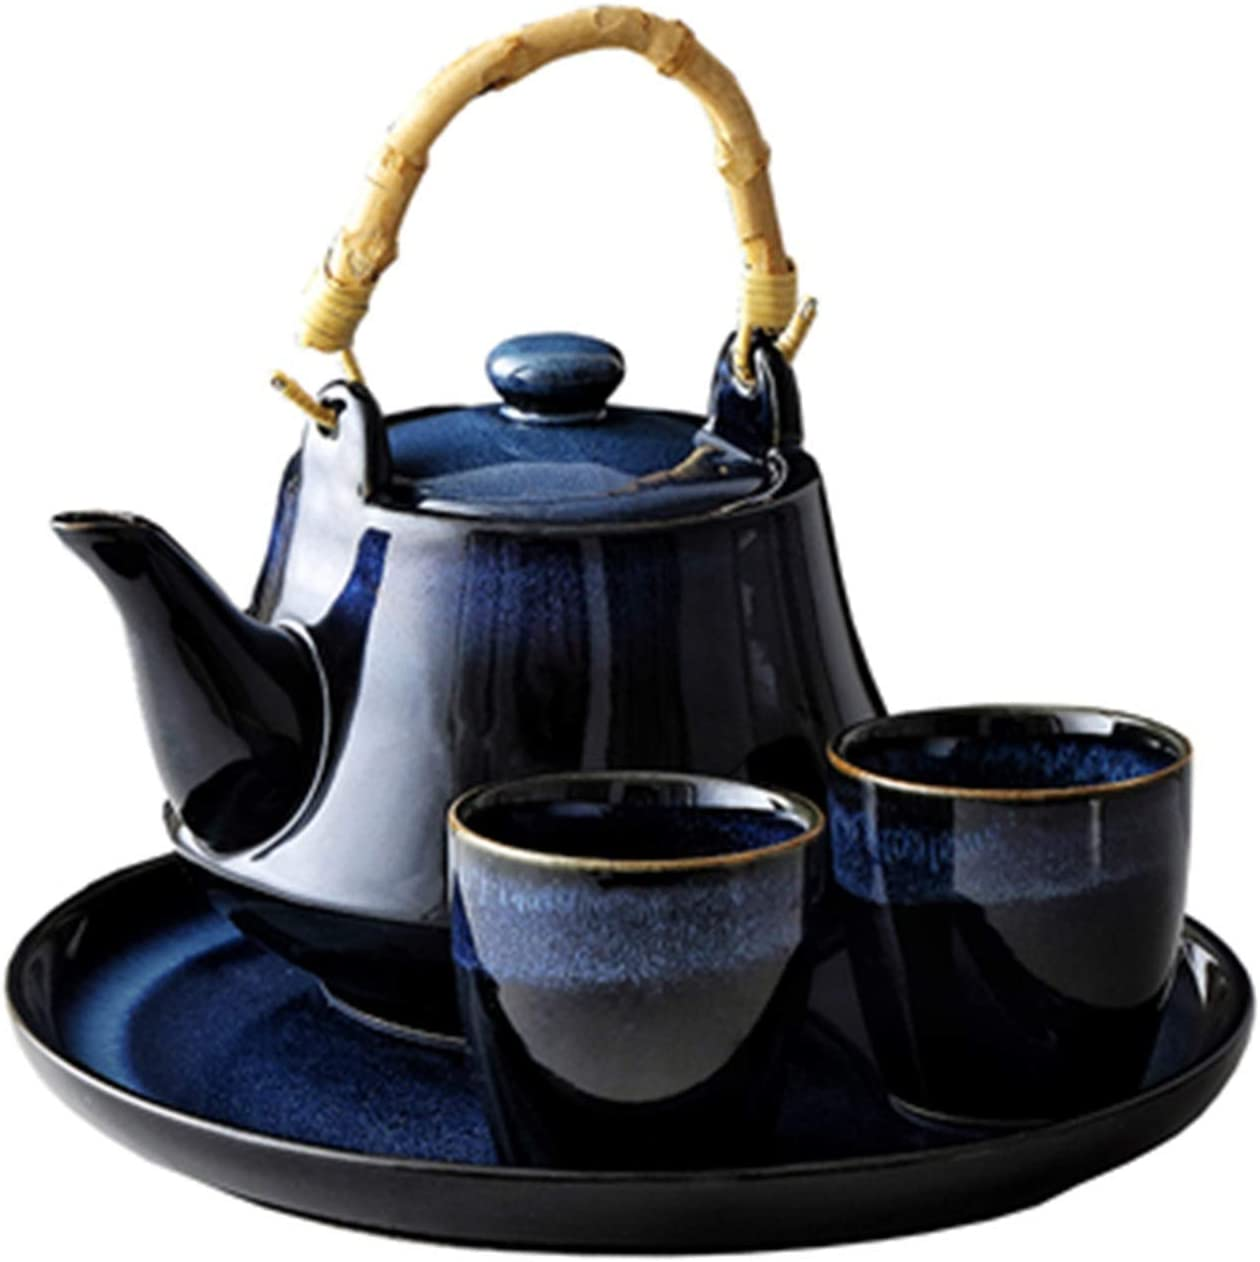 Porcelain Tea Sets Kettle Purchase Set Cerami Hotel All items in the store Family Restaurant